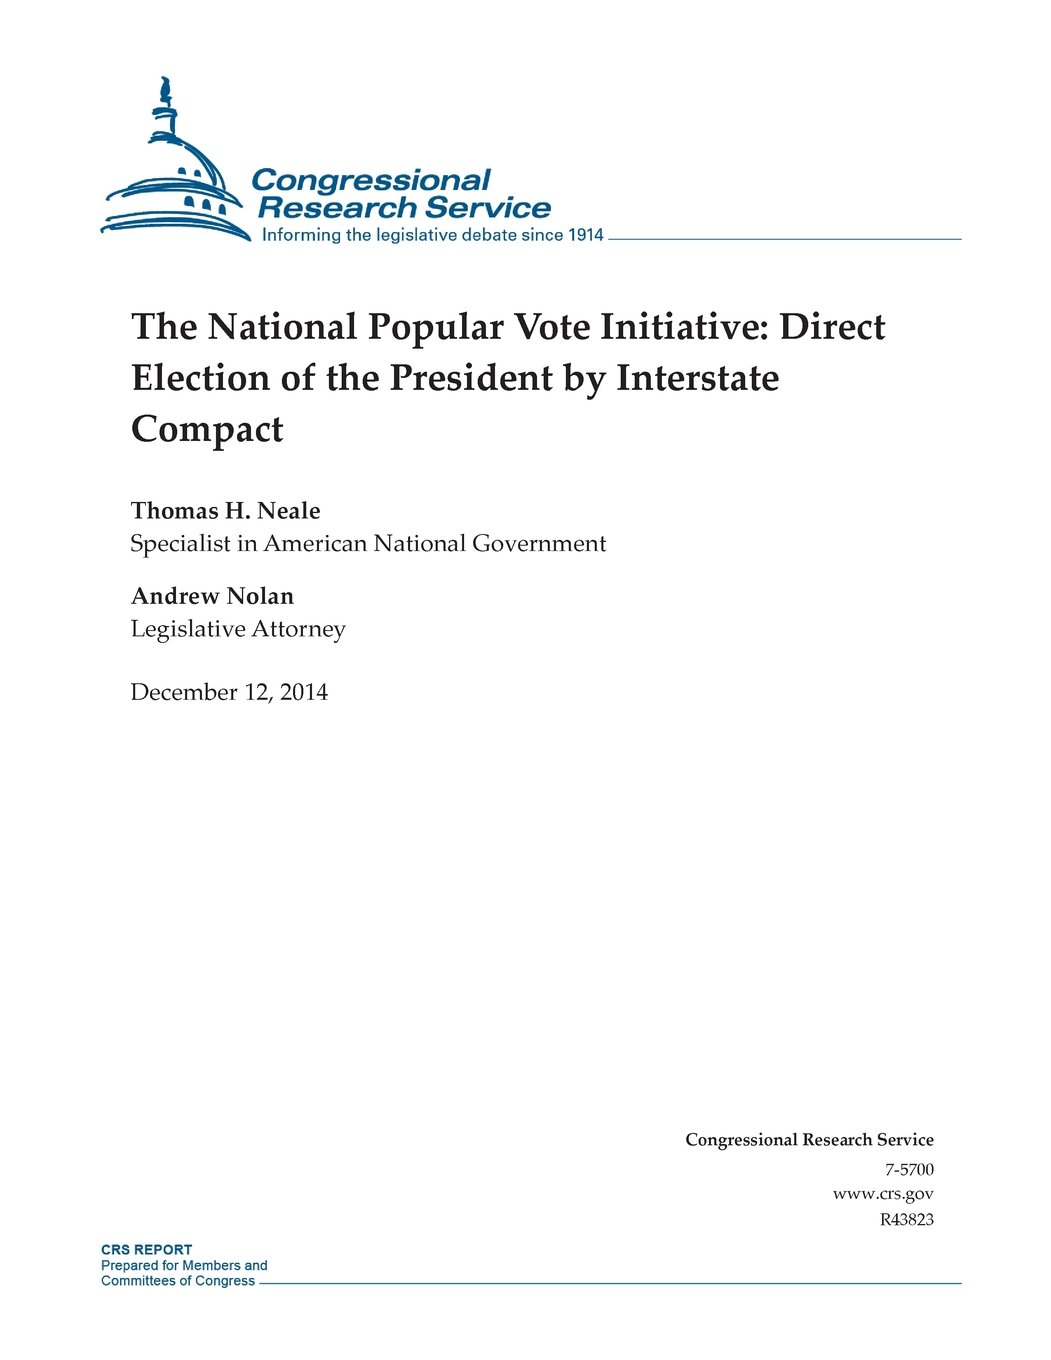 The National Popular Vote Initiative Direct Election Of The